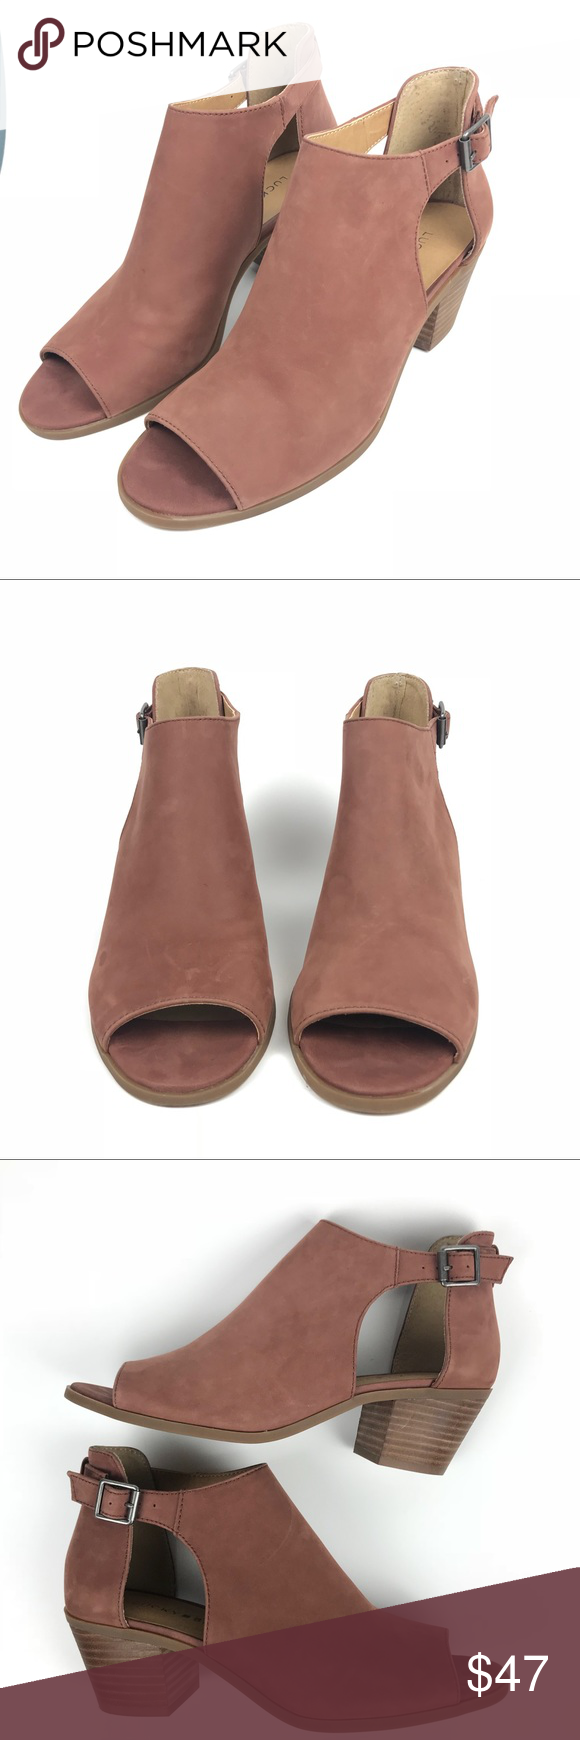 dde4c5da75a3 Lucky Brand Barimo Leather Peep Toe Ankle Booties Lucky Brand Barimo  Leather Peep Toe Ankle Booties 🛍Offers are welcome🛍 Size 7.5 ⚪ Good  Condition ...